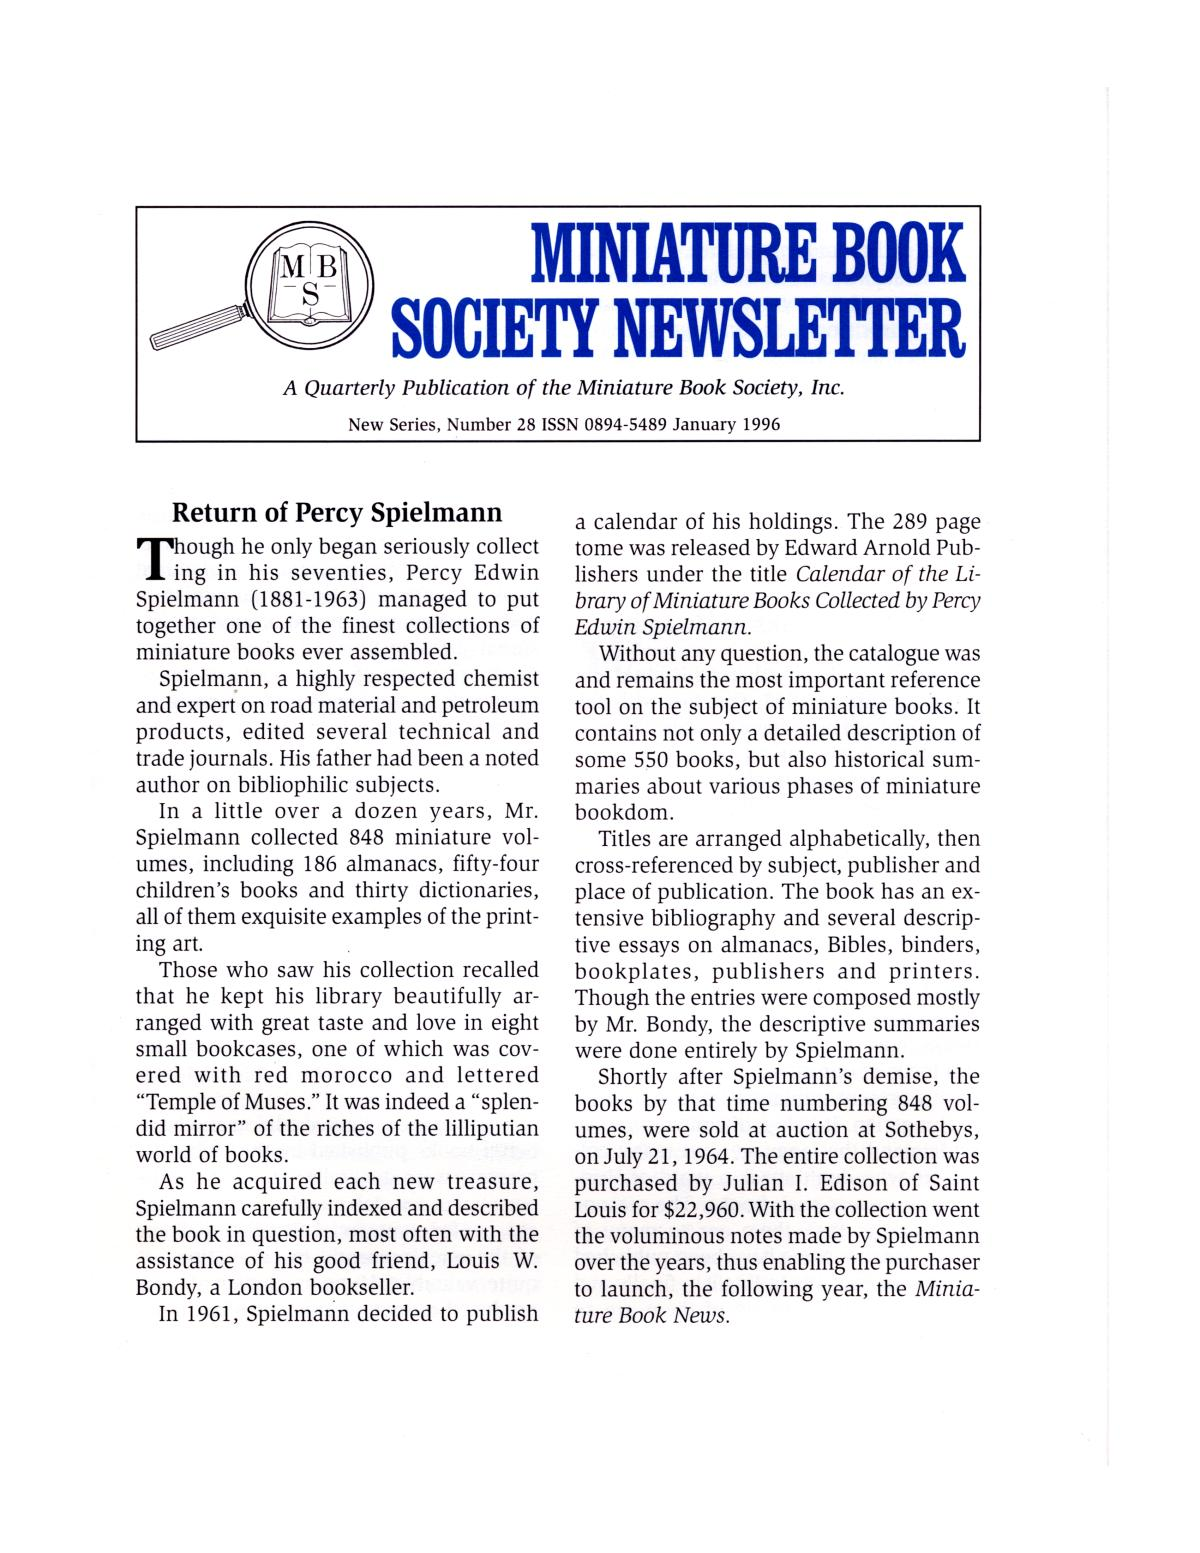 Miniature Book Society Newsletter 1996 January                                                                                                      1